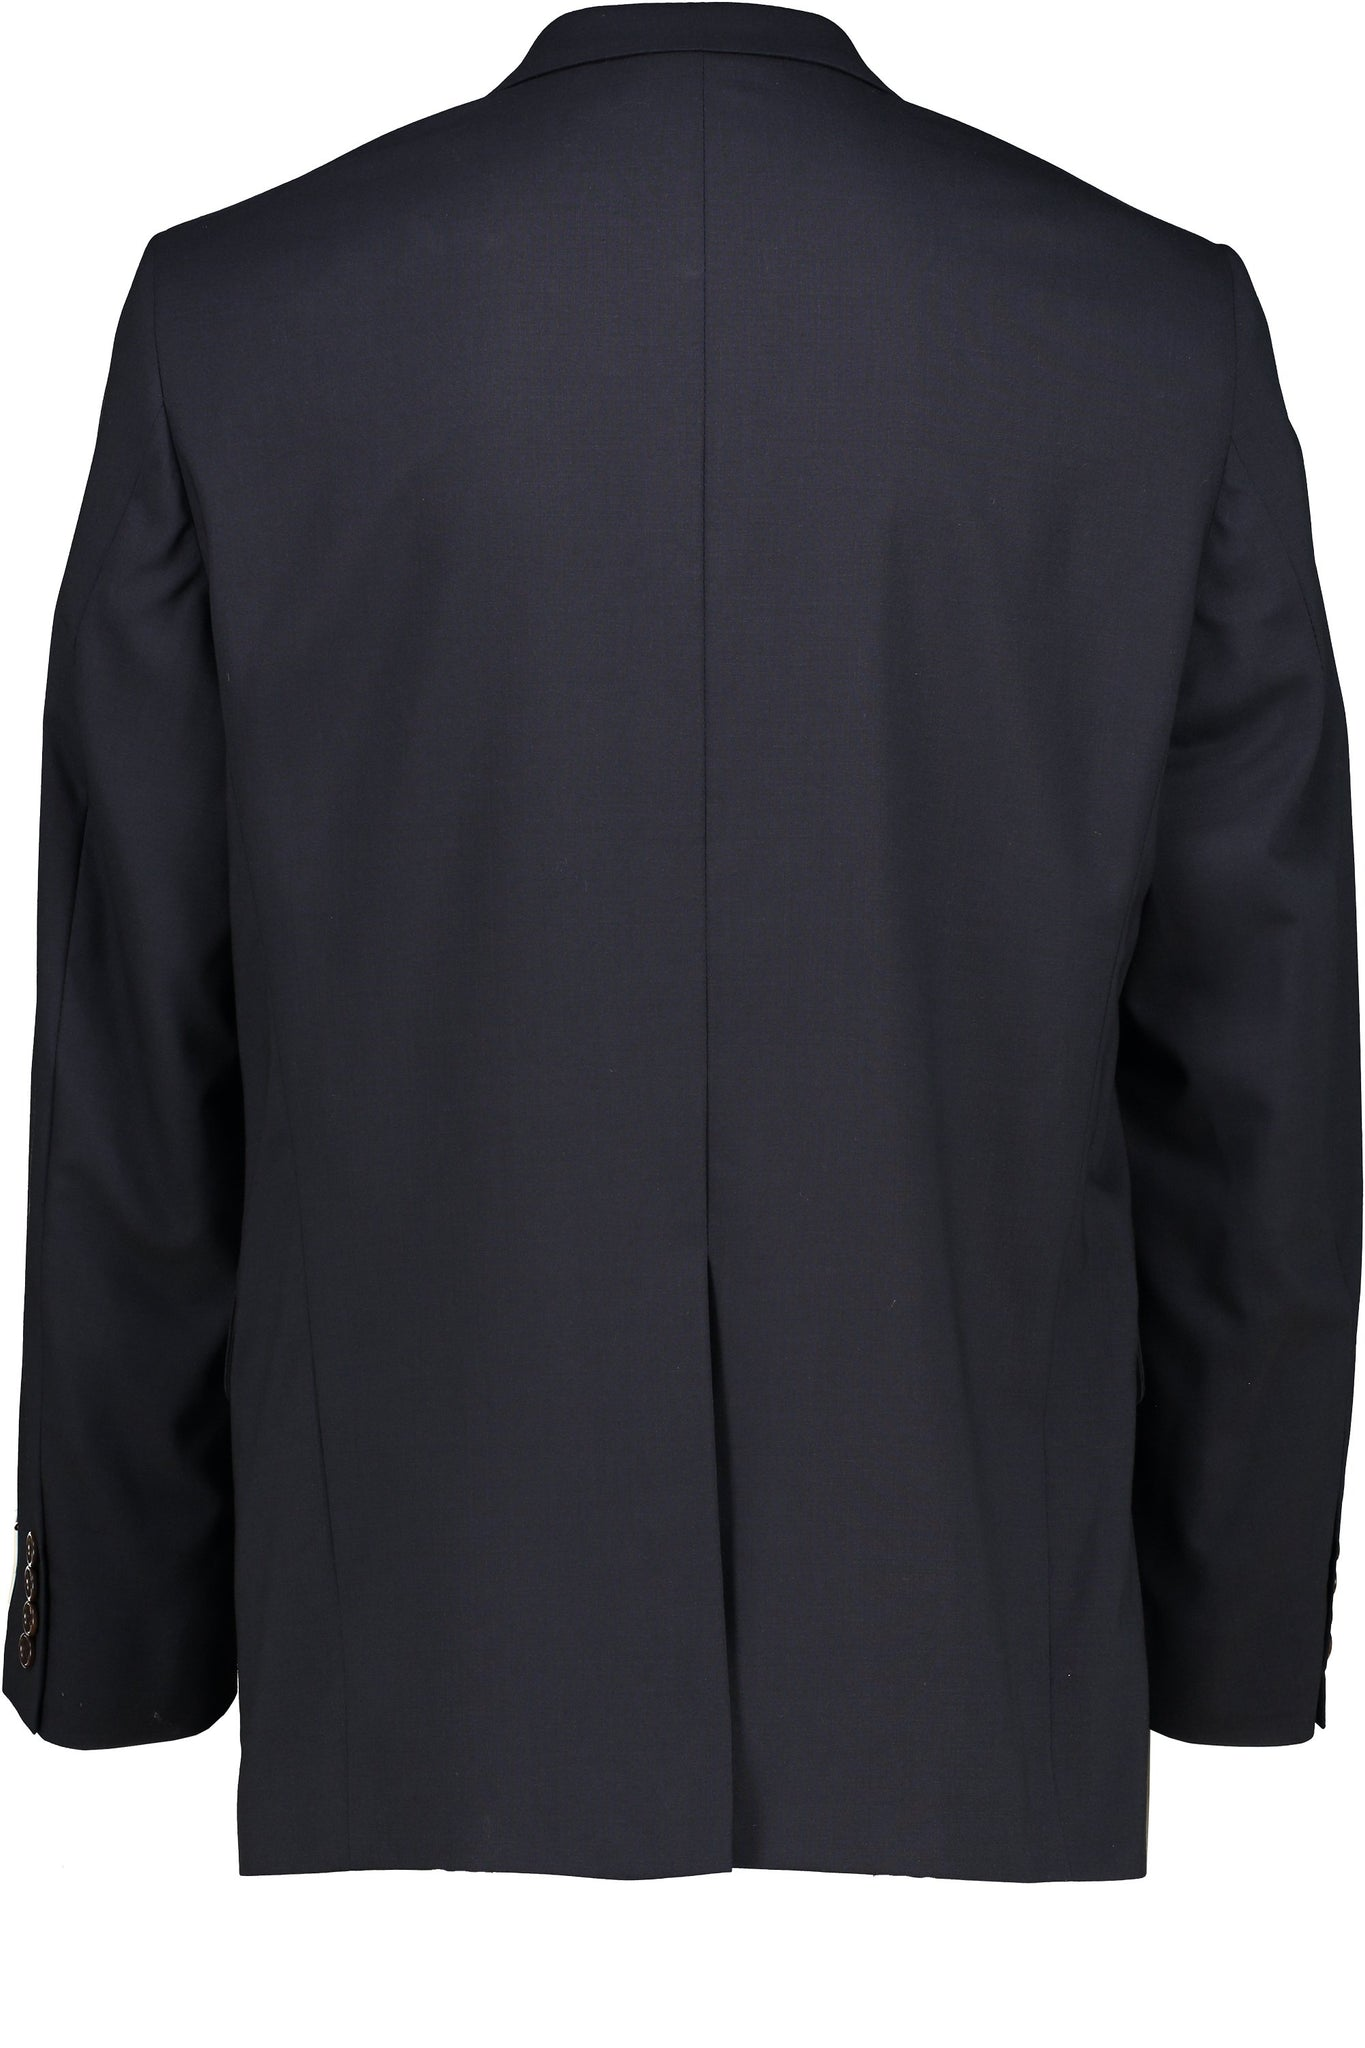 Classic Fit Navy H-Tech Wool SS Jacket - Big & Tall -  Hardwick.com